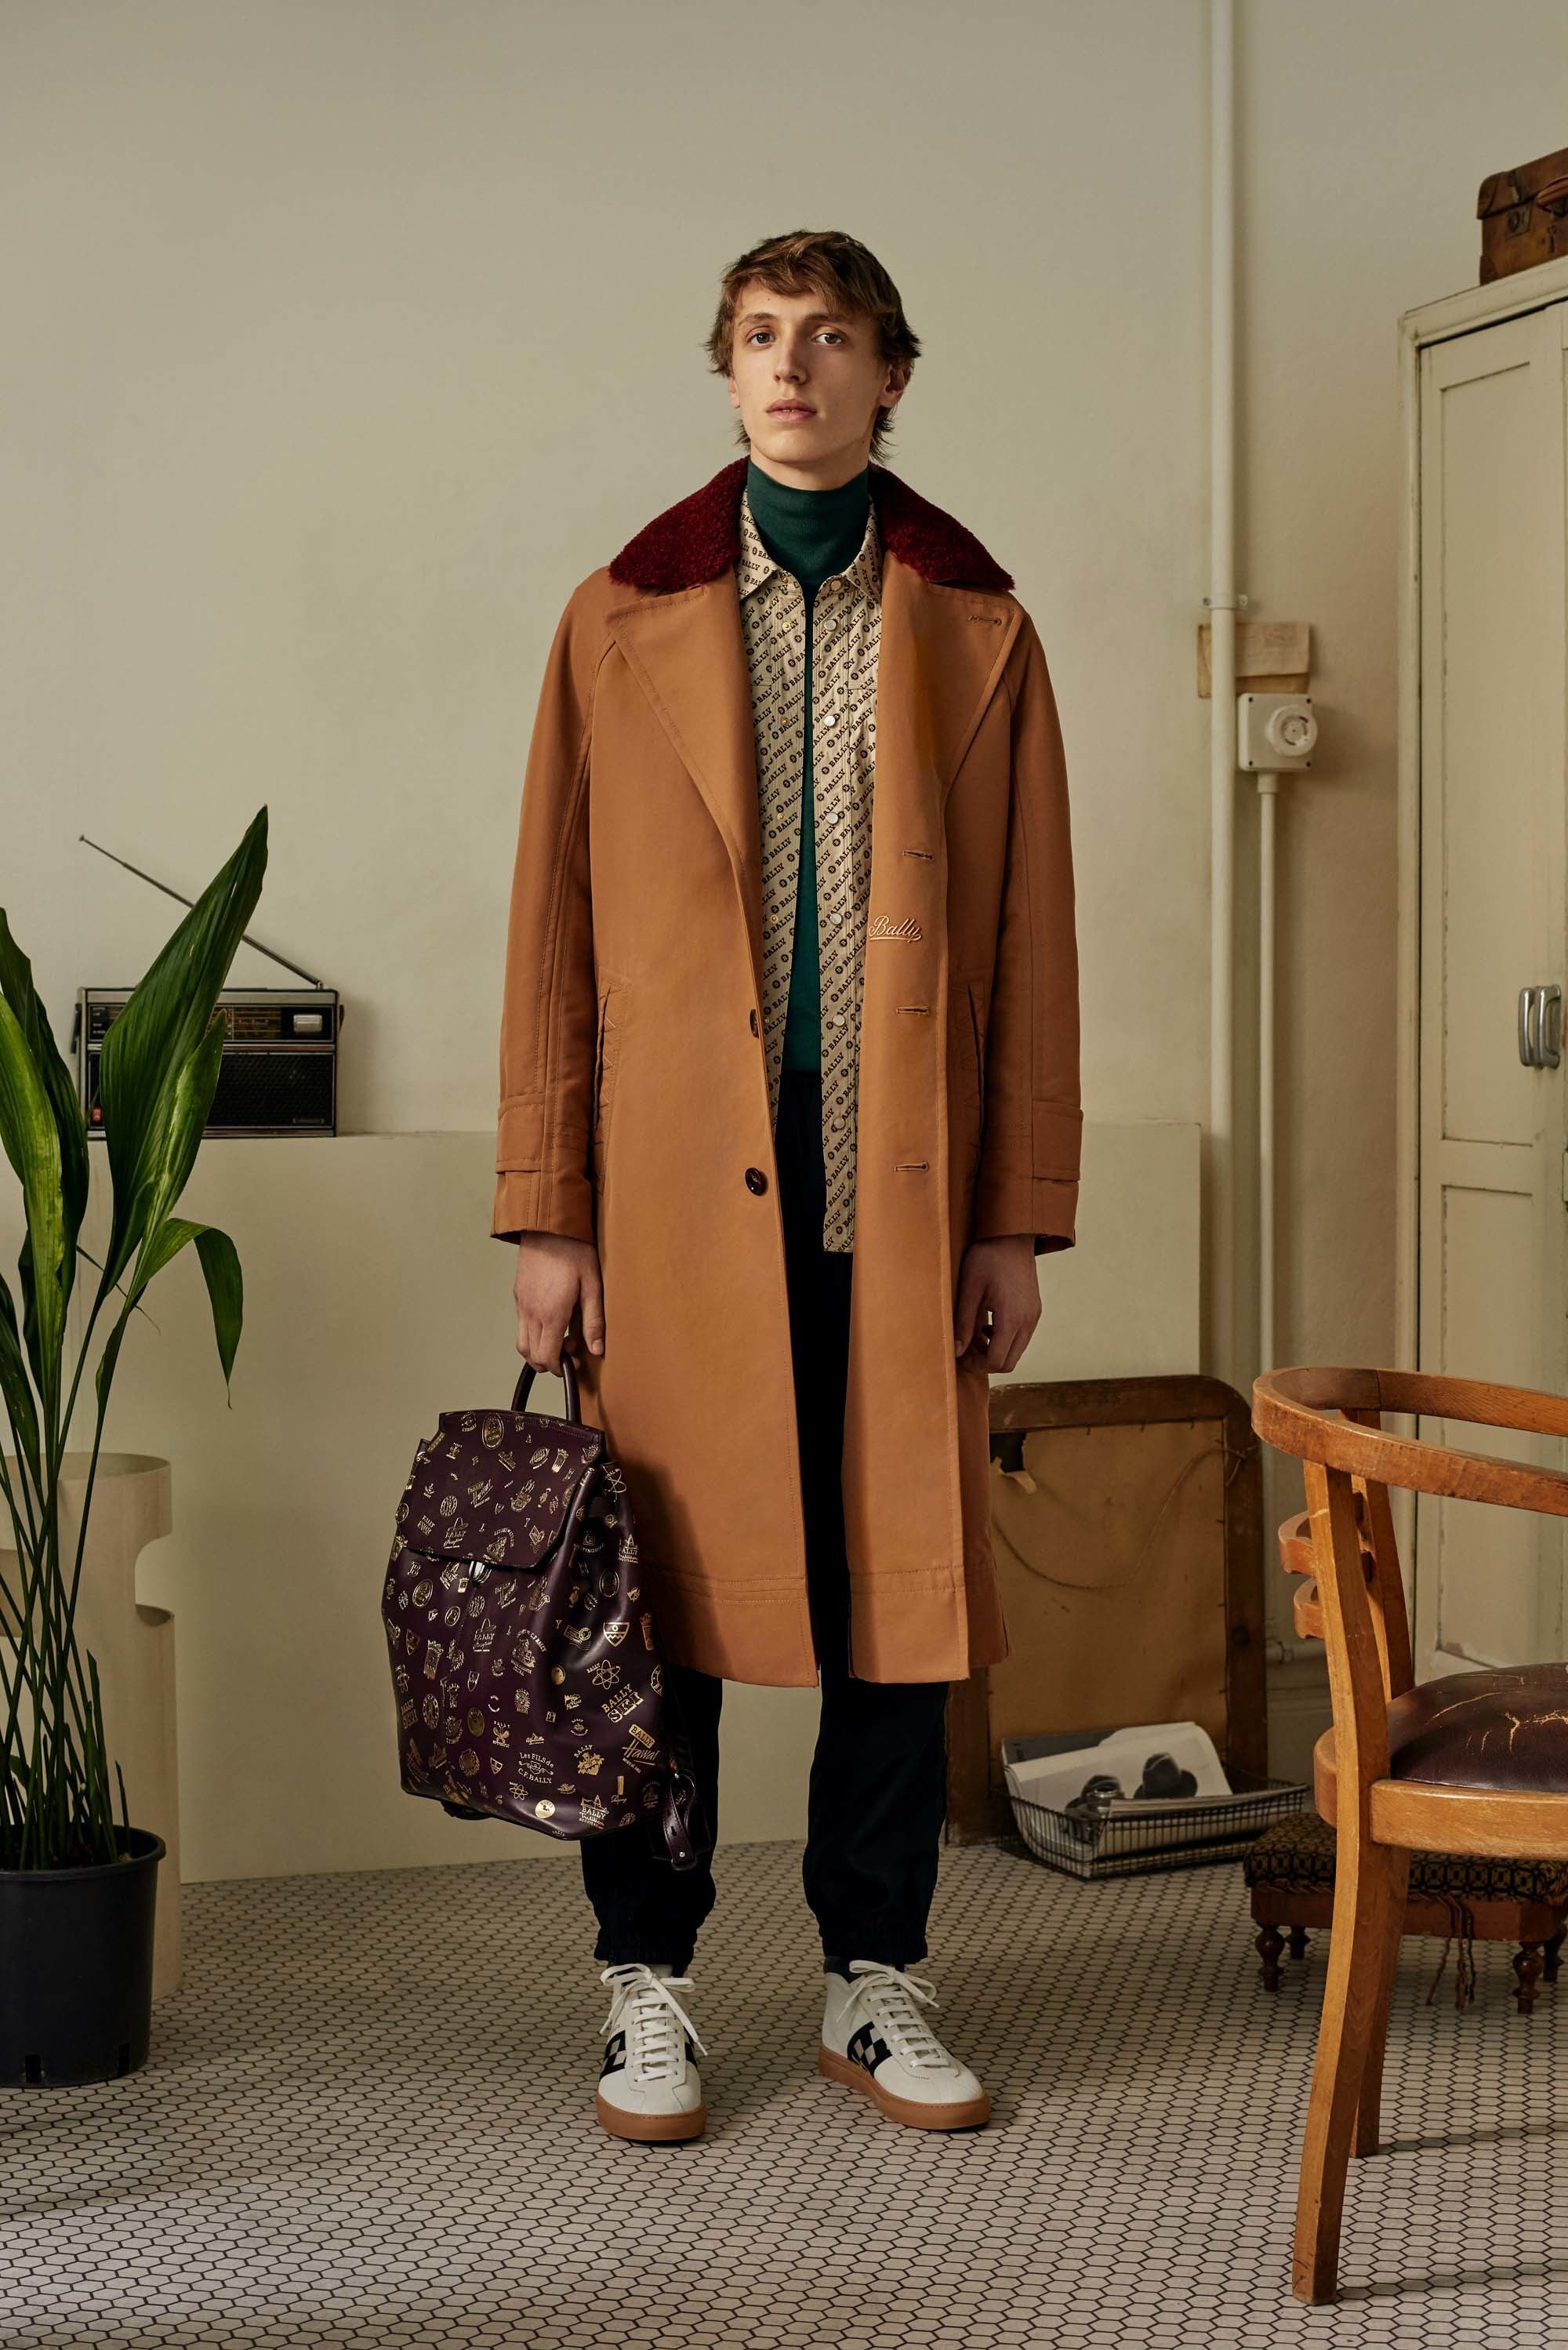 Fashion style Looks Inspirationrunway for less bally spring for lady